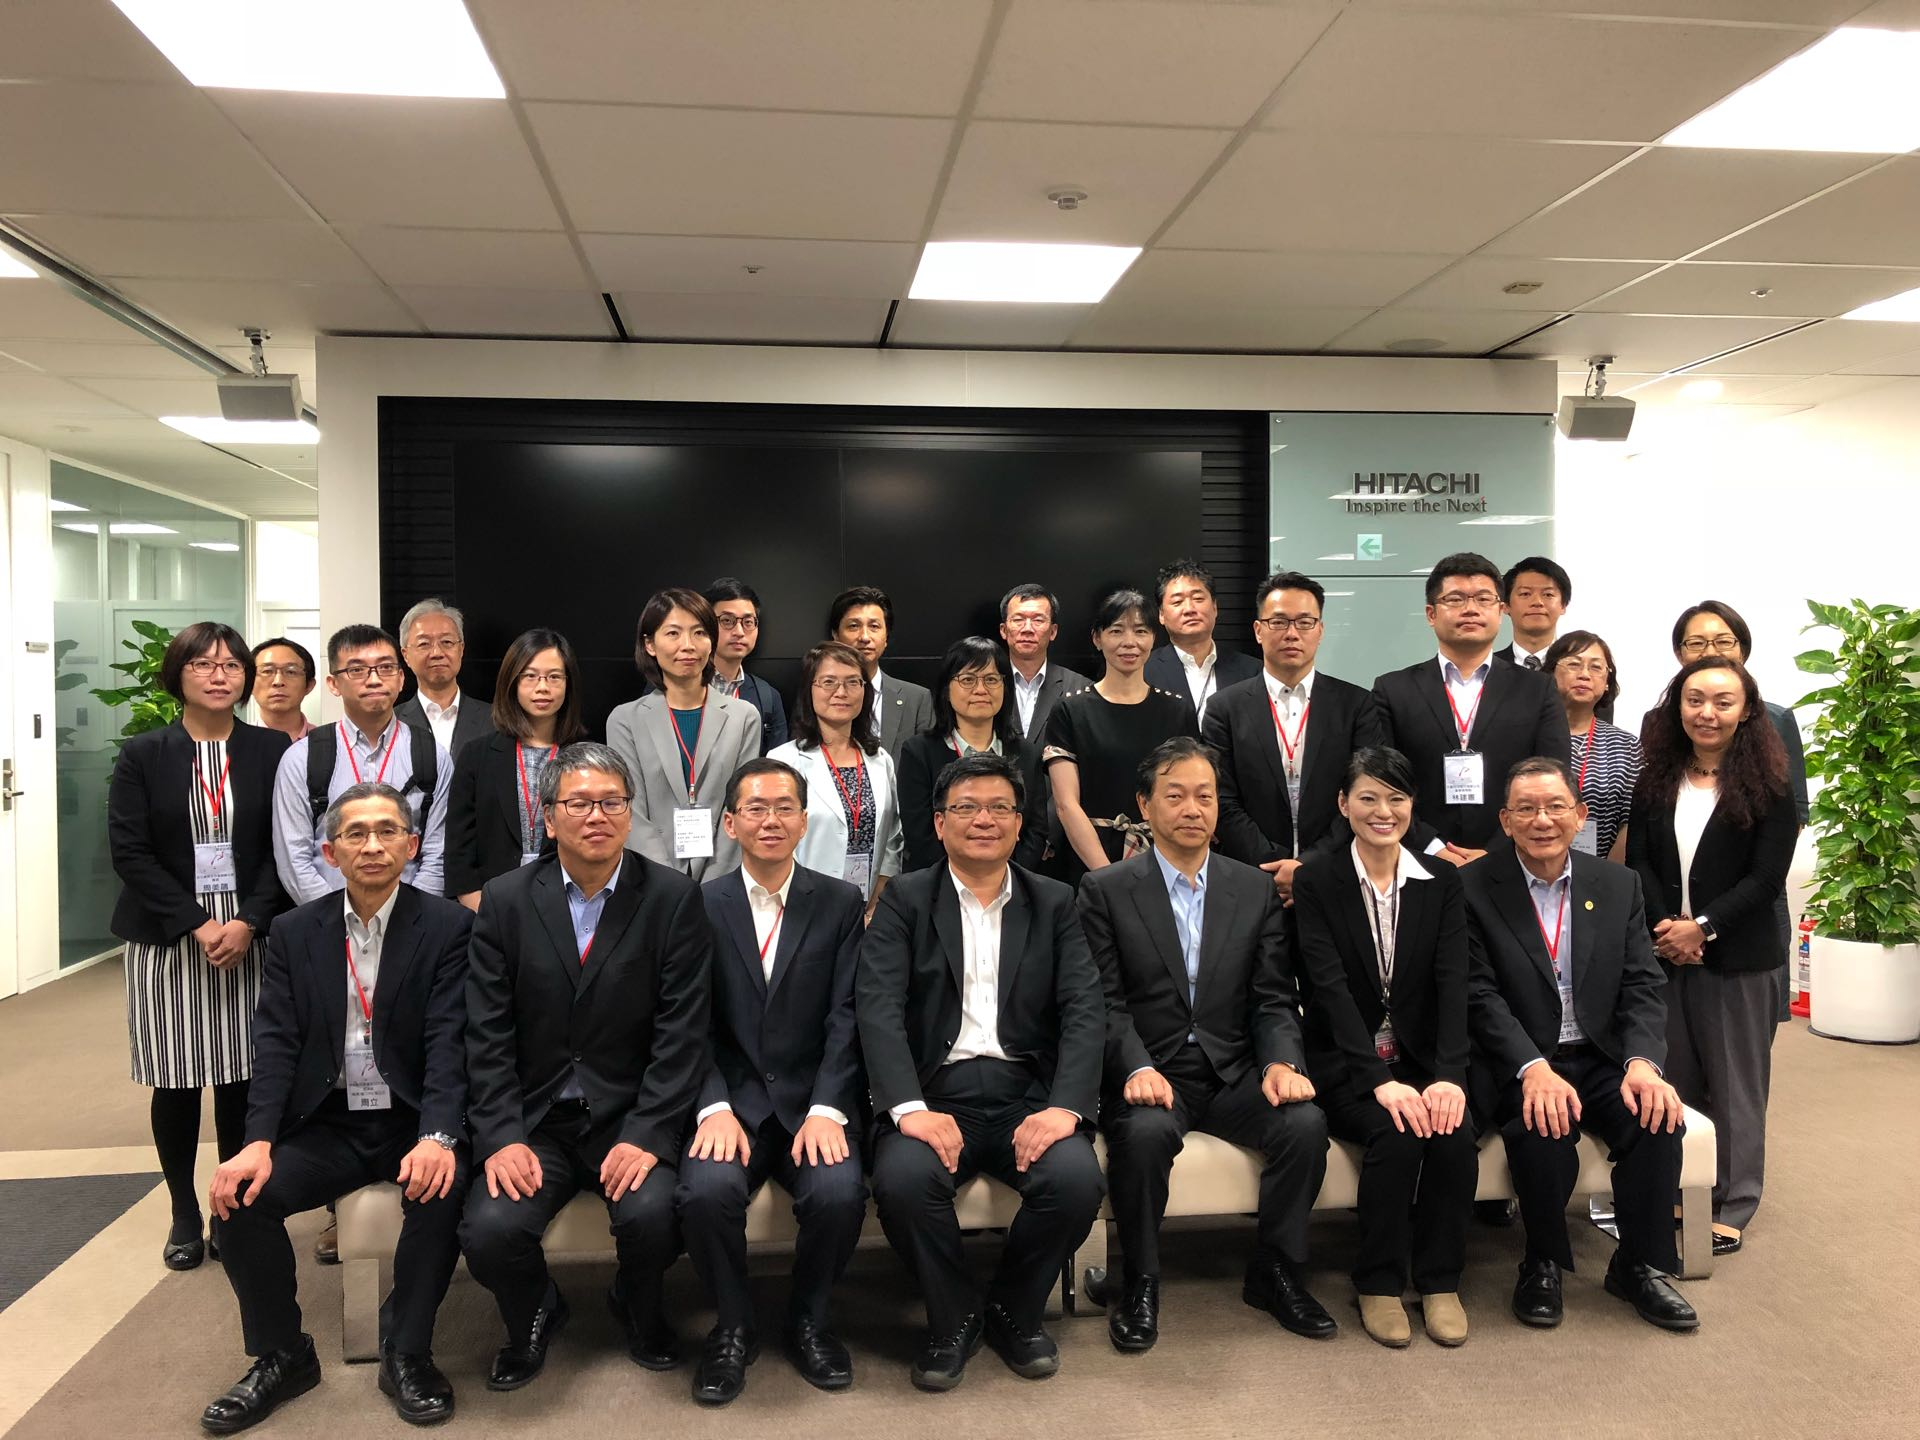 2019 Taiwan-Japan OB Alliance Kanto Industry Cooperation Delegation photo-1